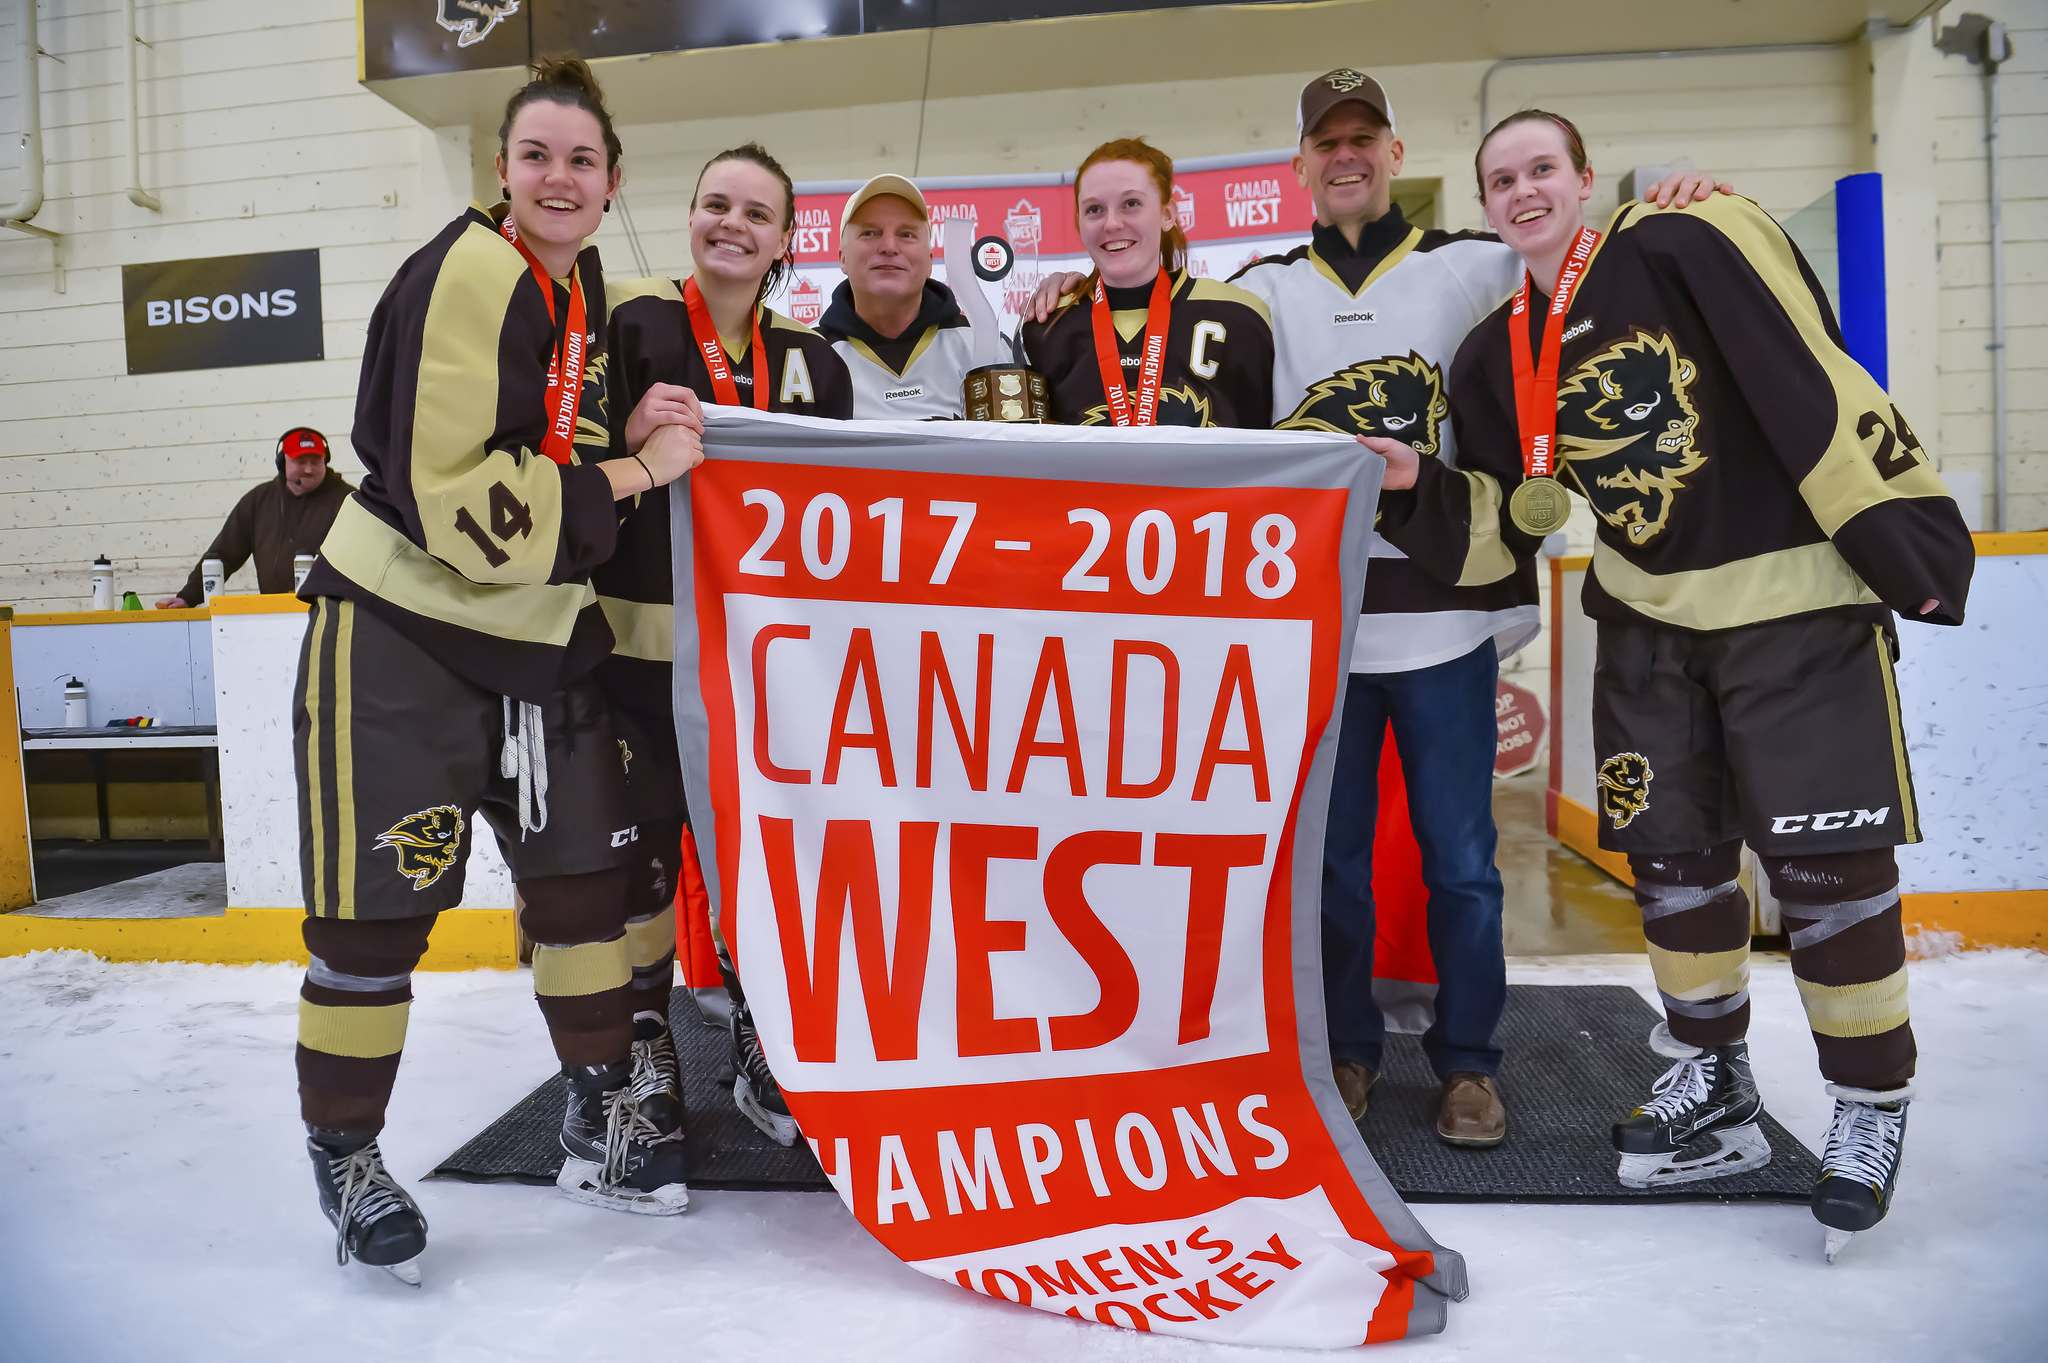 SUBMITTED</p><p>The University of Manitoba Bisons beat the Saskatchewan Huskies squad to win the Canada West title.</p>